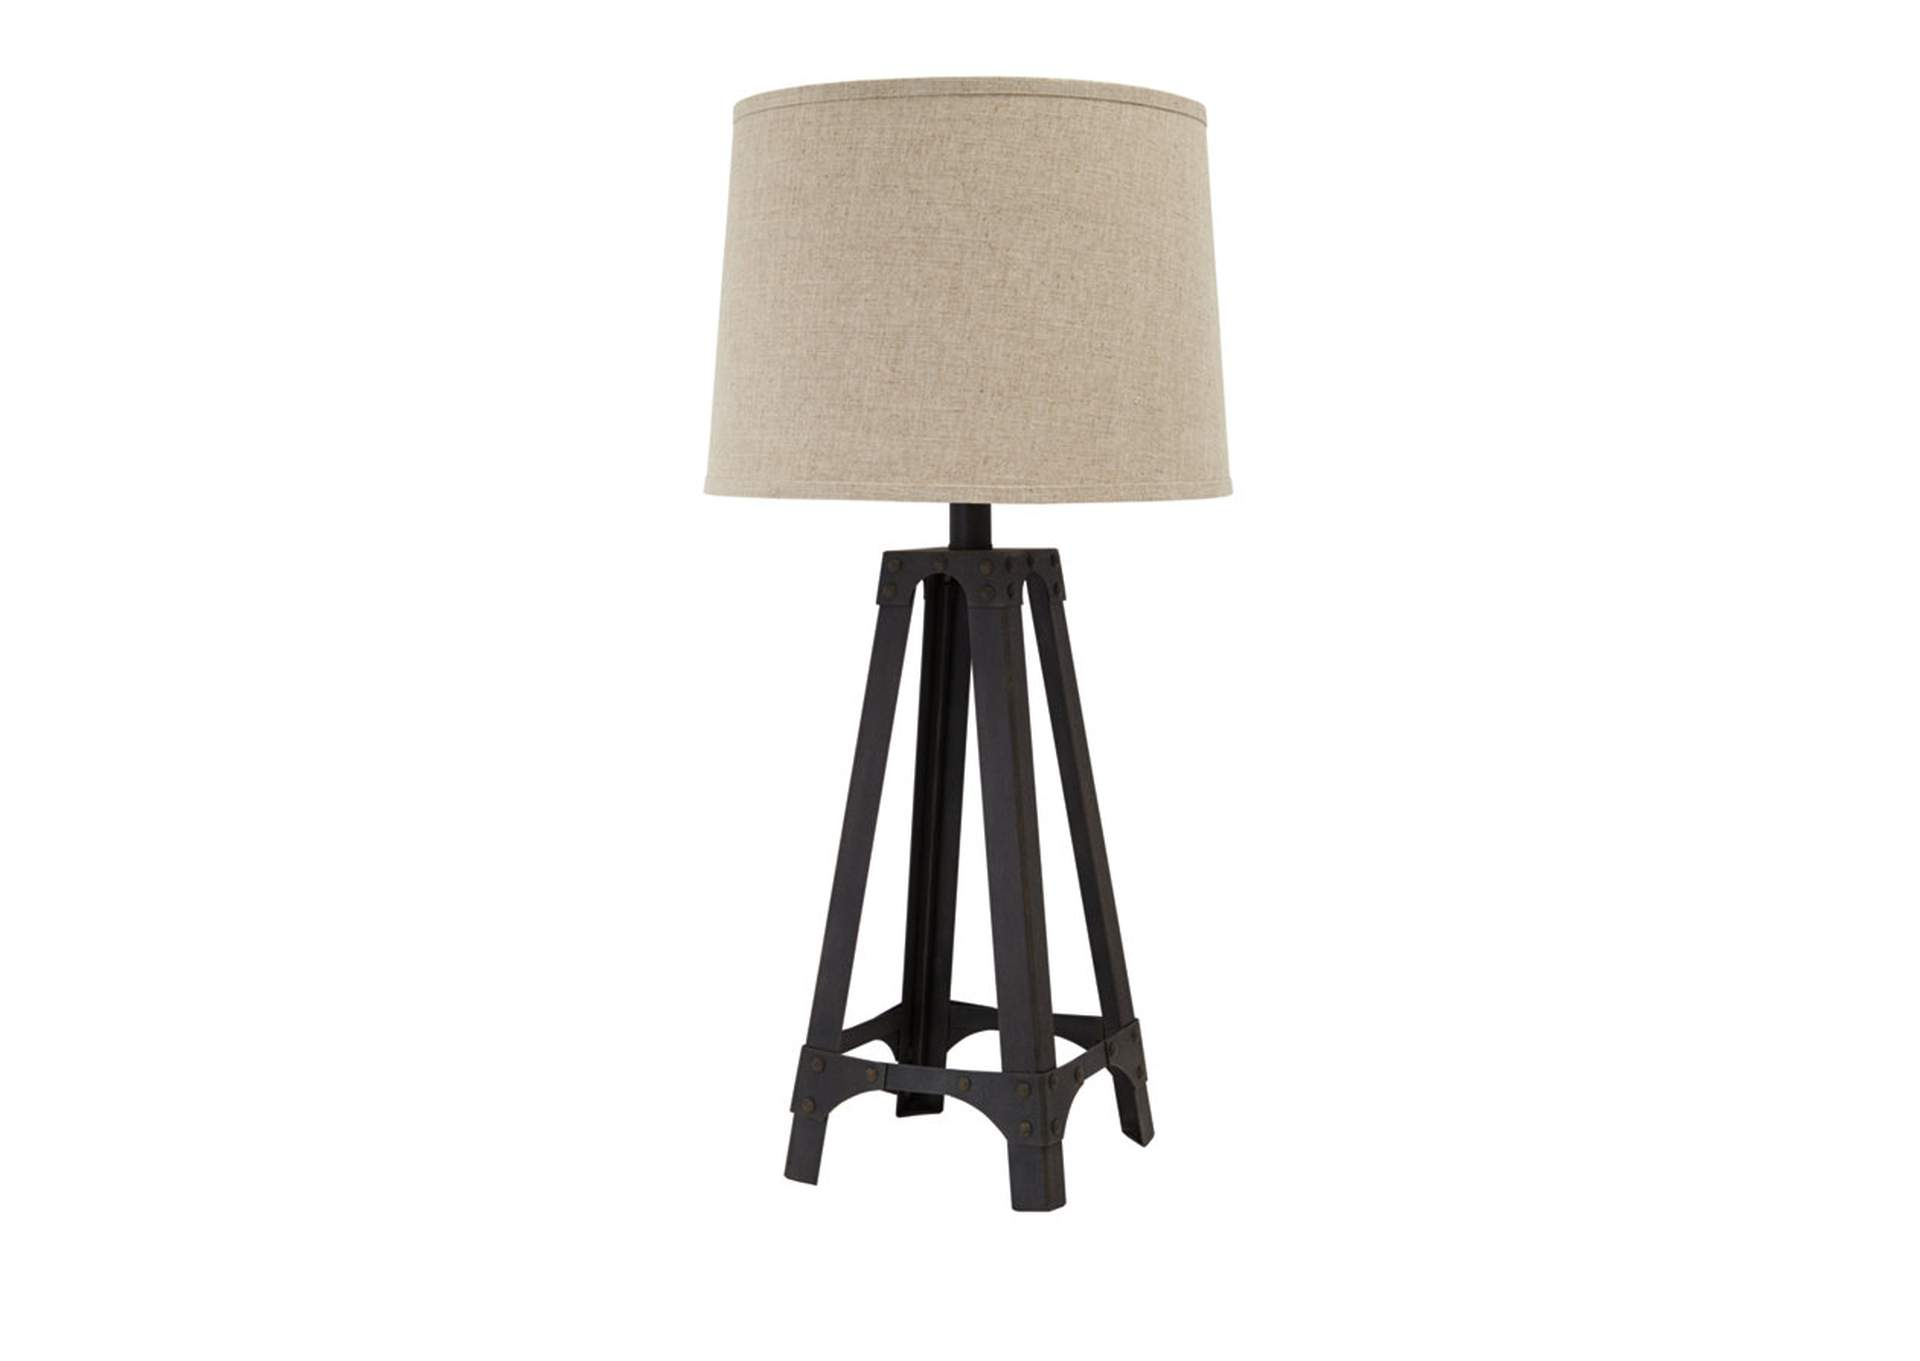 Brown Metal Table Lamp,Signature Design By Ashley